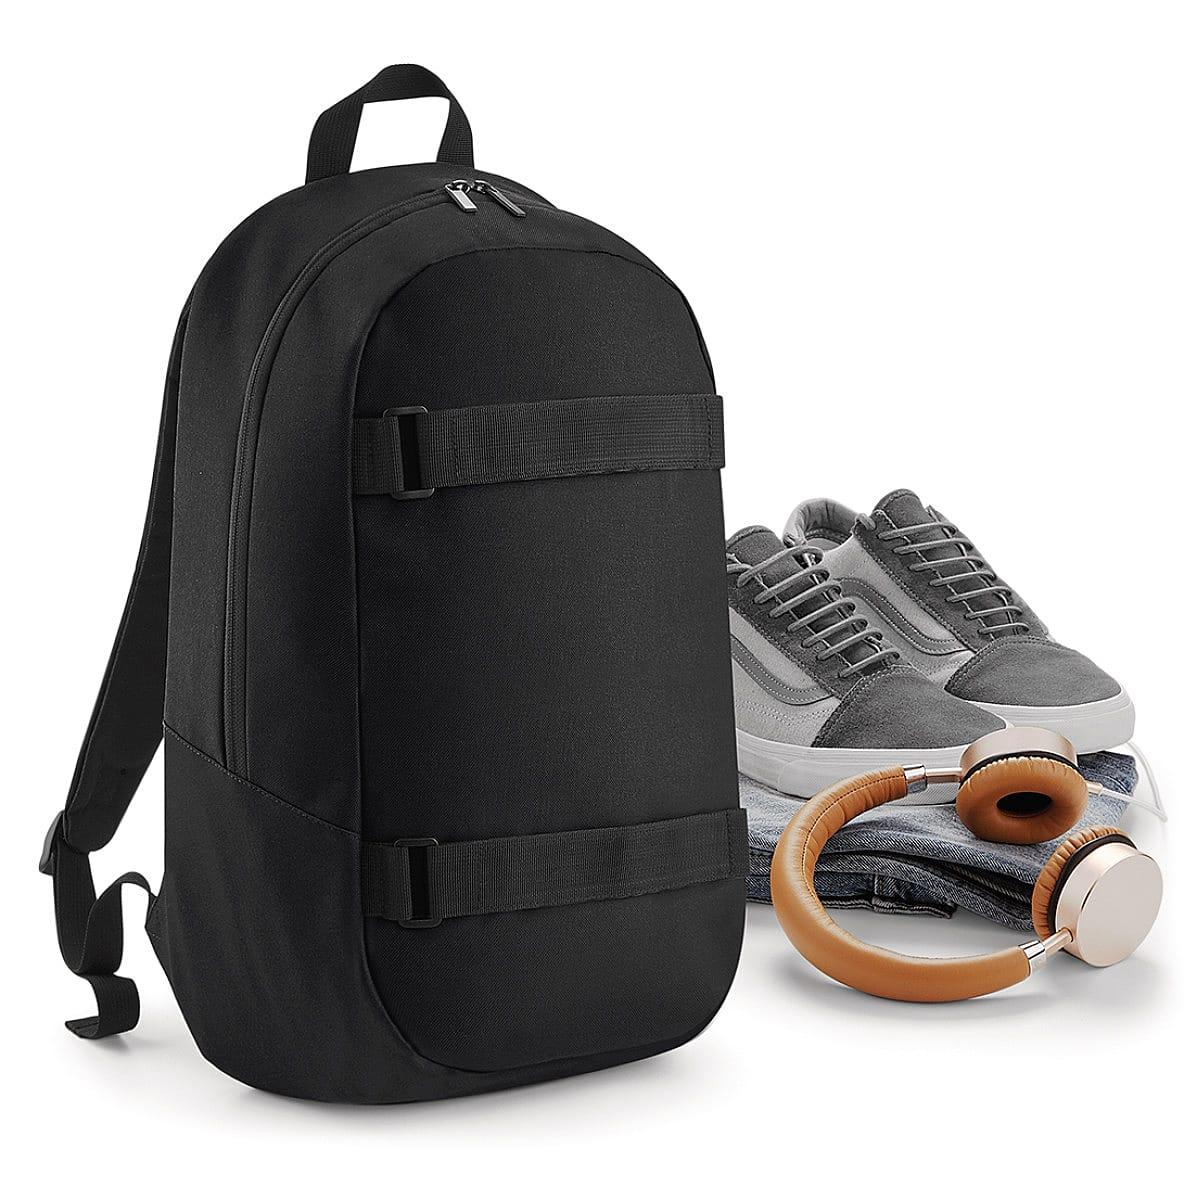 Bagbase Carve Boardpack in Black (Product Code: BG851)